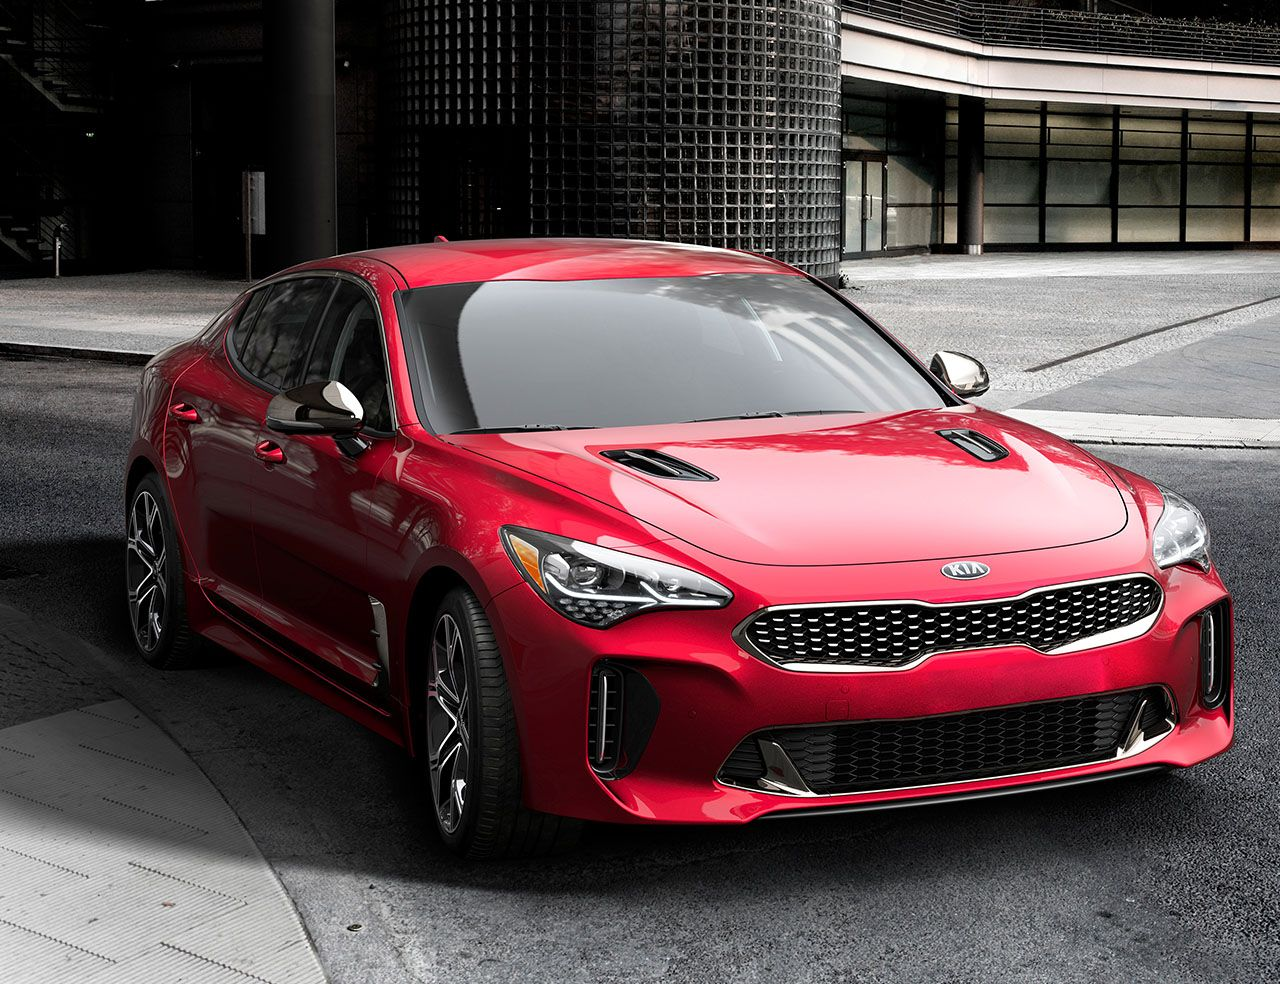 2018 Kia Stinger for Sale near New Braunfels, TX